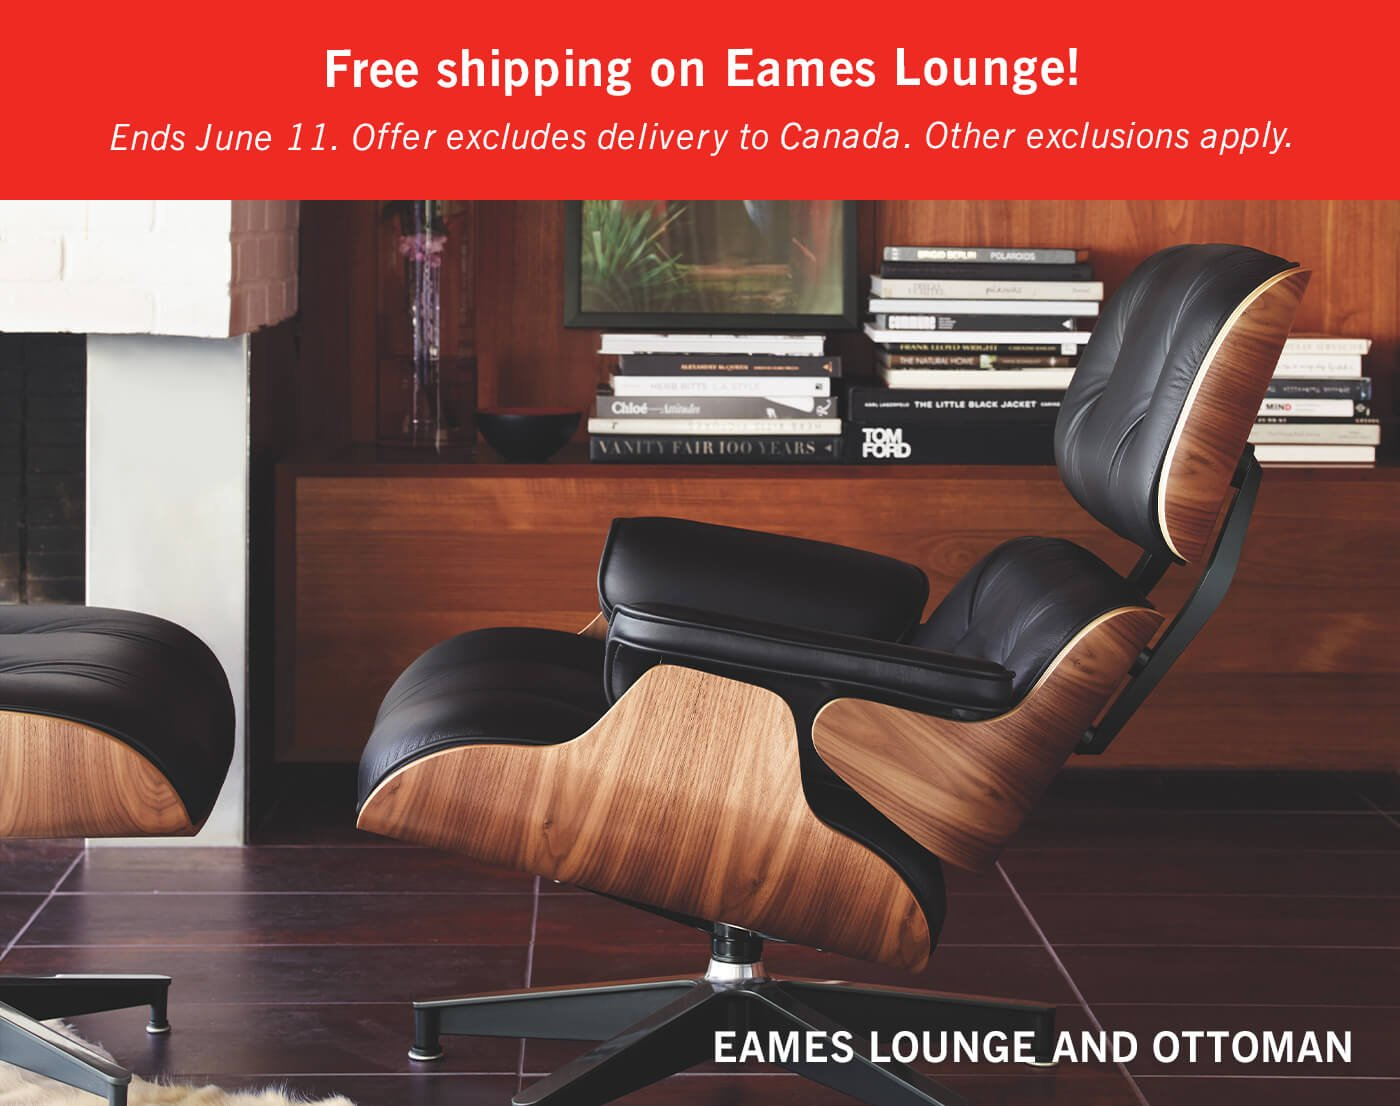 Free shipping on Eames® Lounge. Ends June 11 – other exclusions apply.